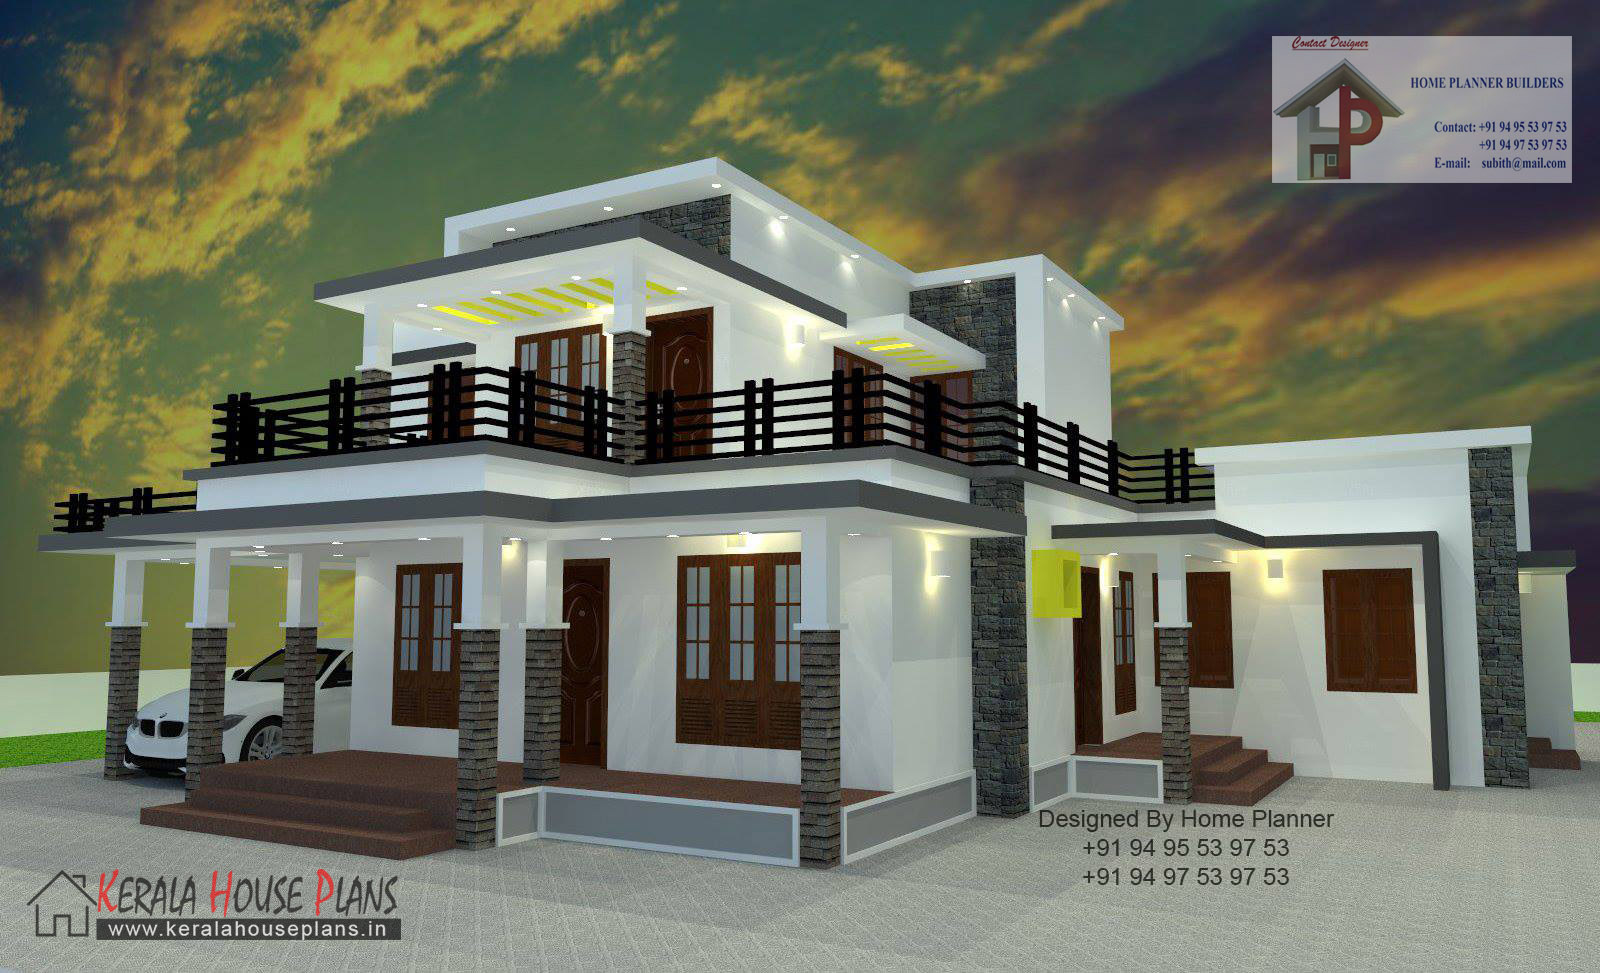 2000 sqft box type house kerala house plans designs for Type of floors in houses